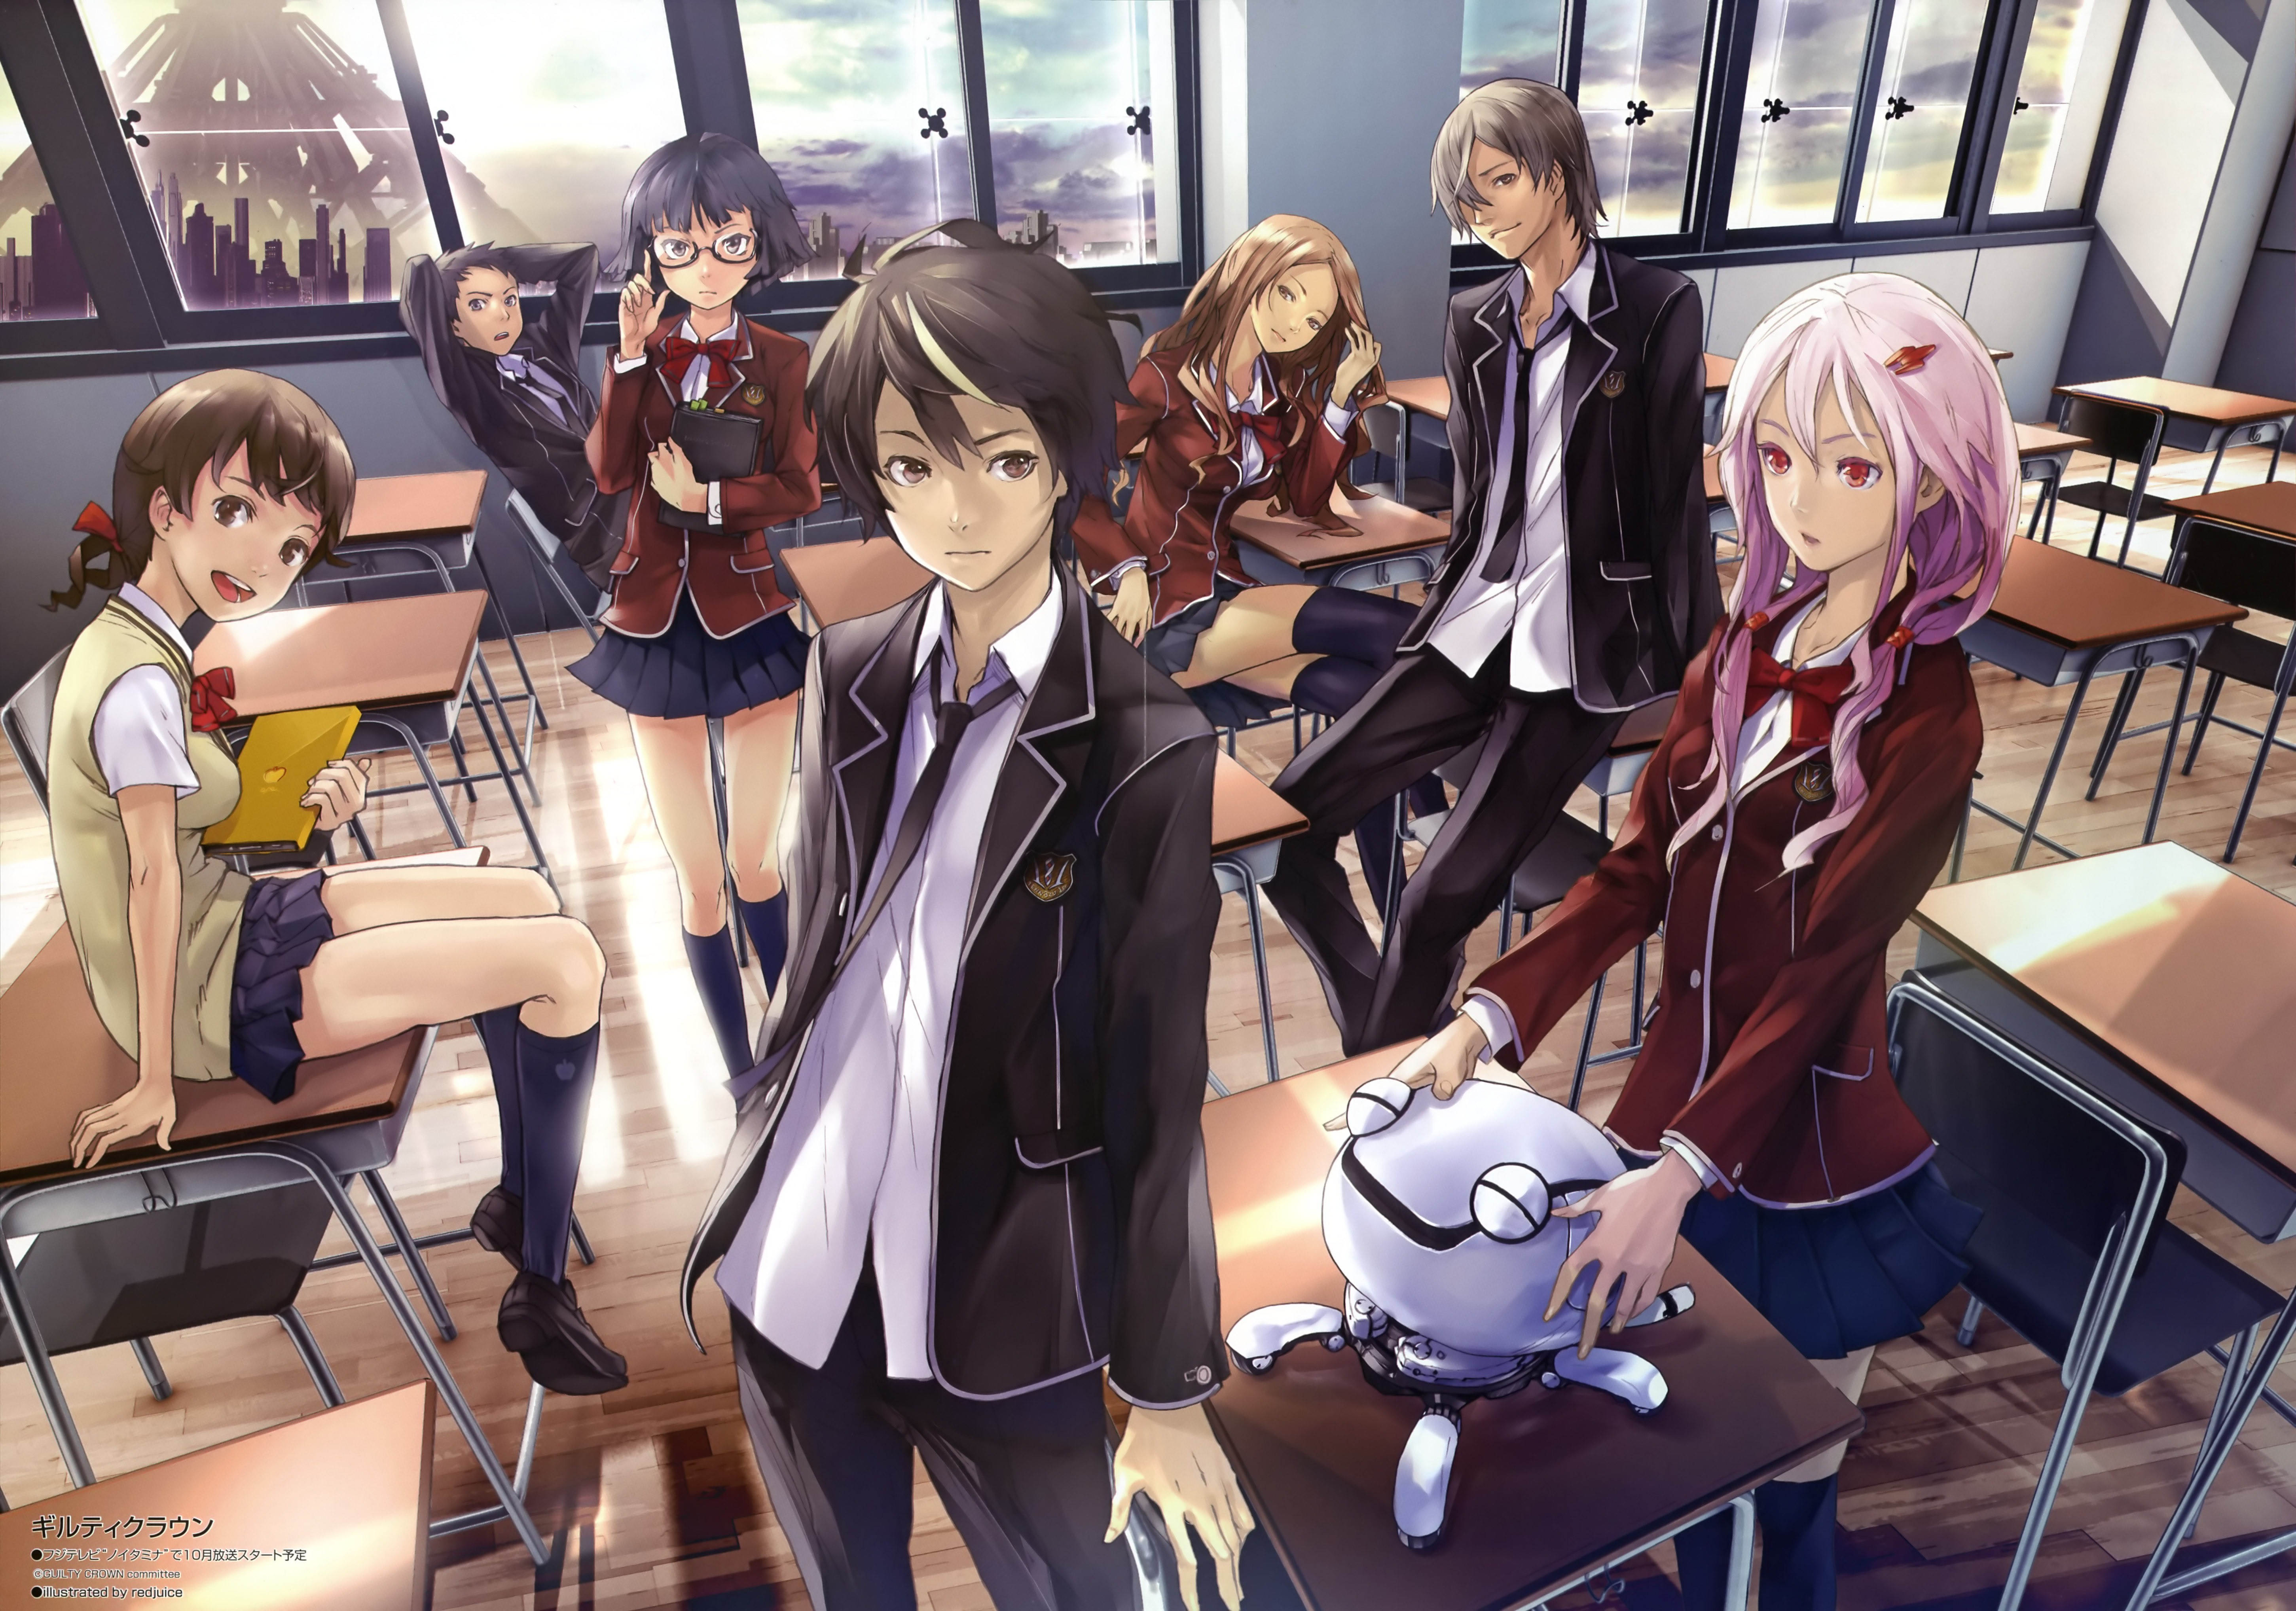 school uniforms Anime guilty HD Wallpaper